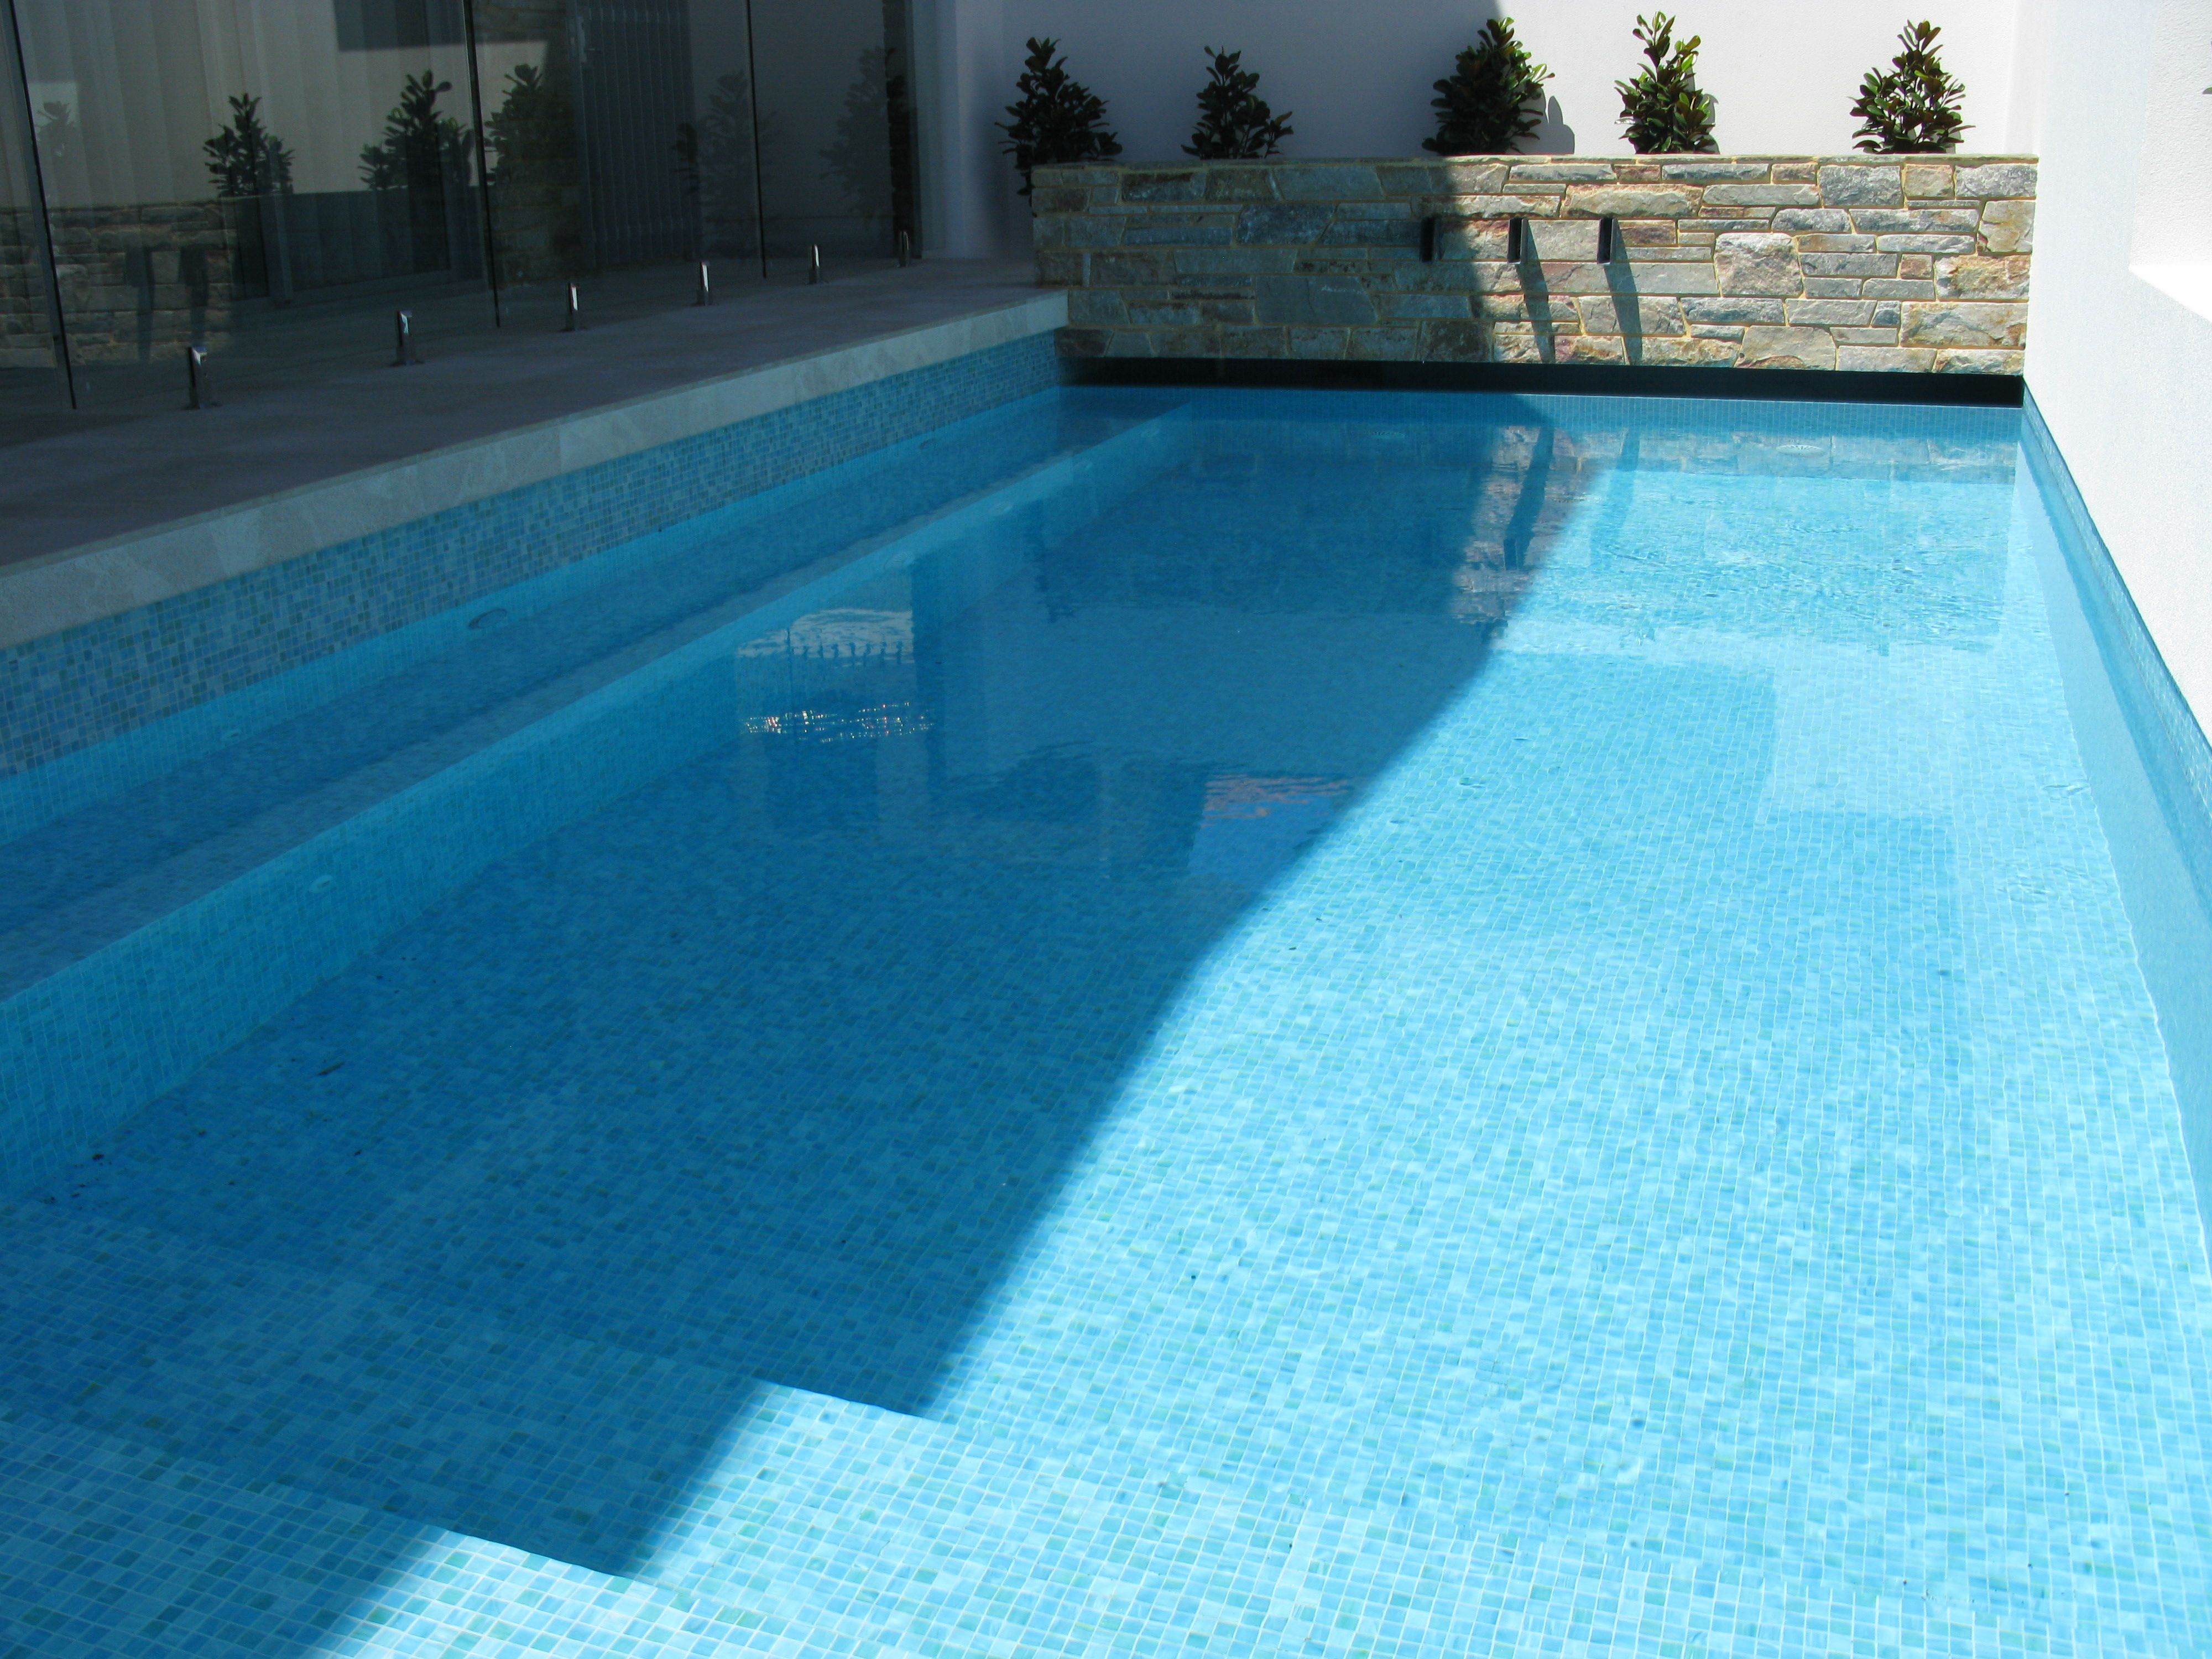 Swimming pool tiles gallery ceramic tile supplies perth for Swimming pool gallery